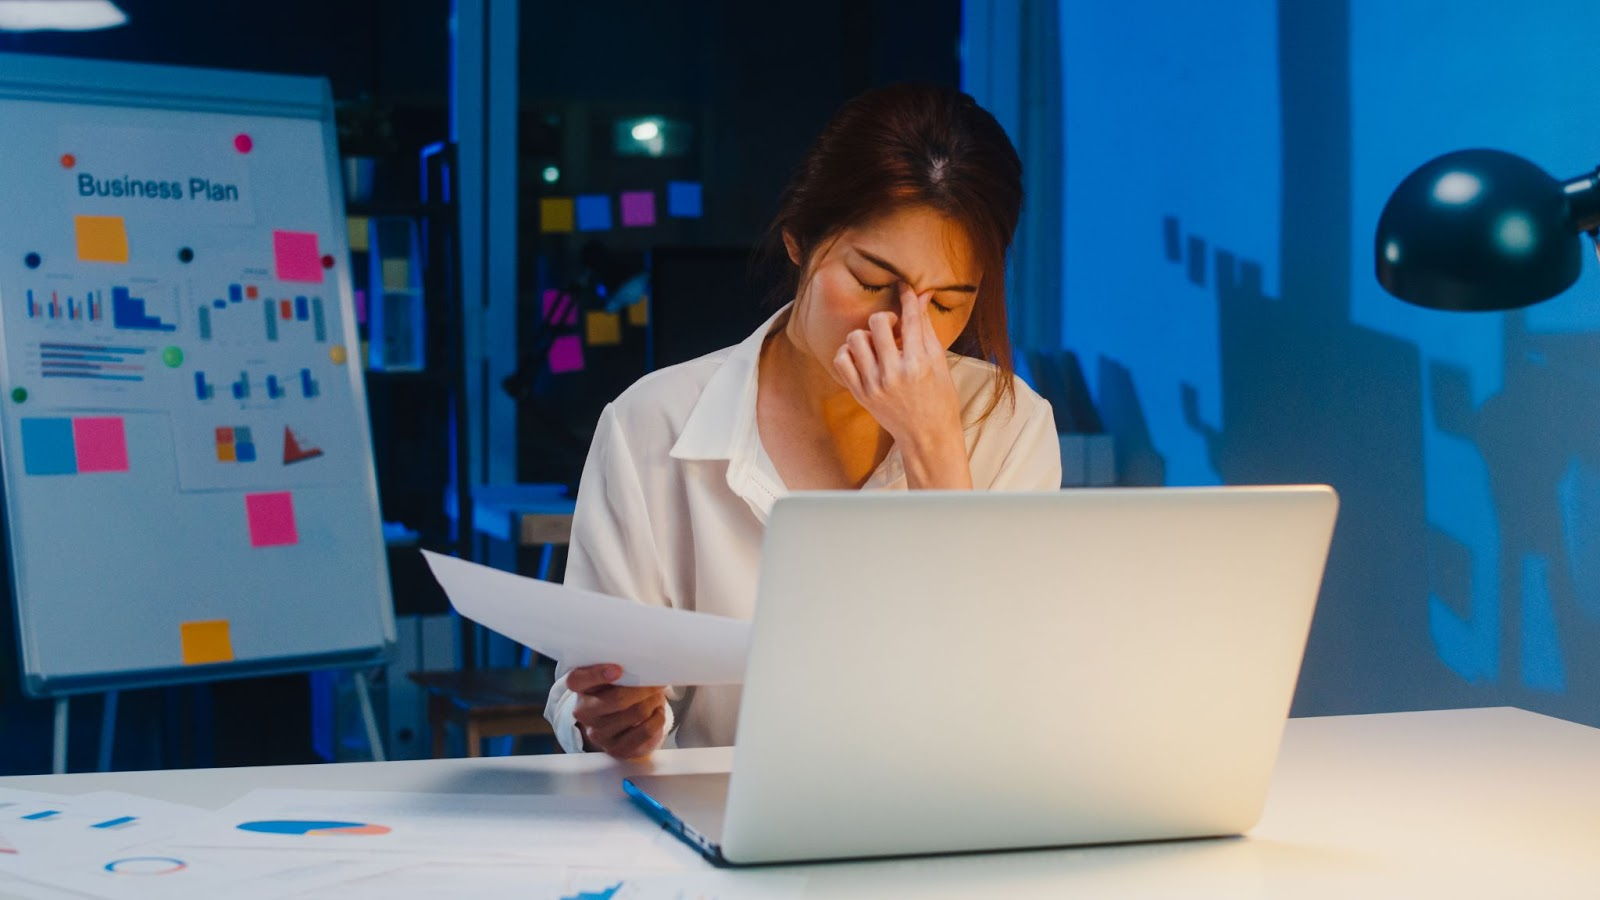 Sleep procrastination: A woman closes her eyes while sitting in her office late at night